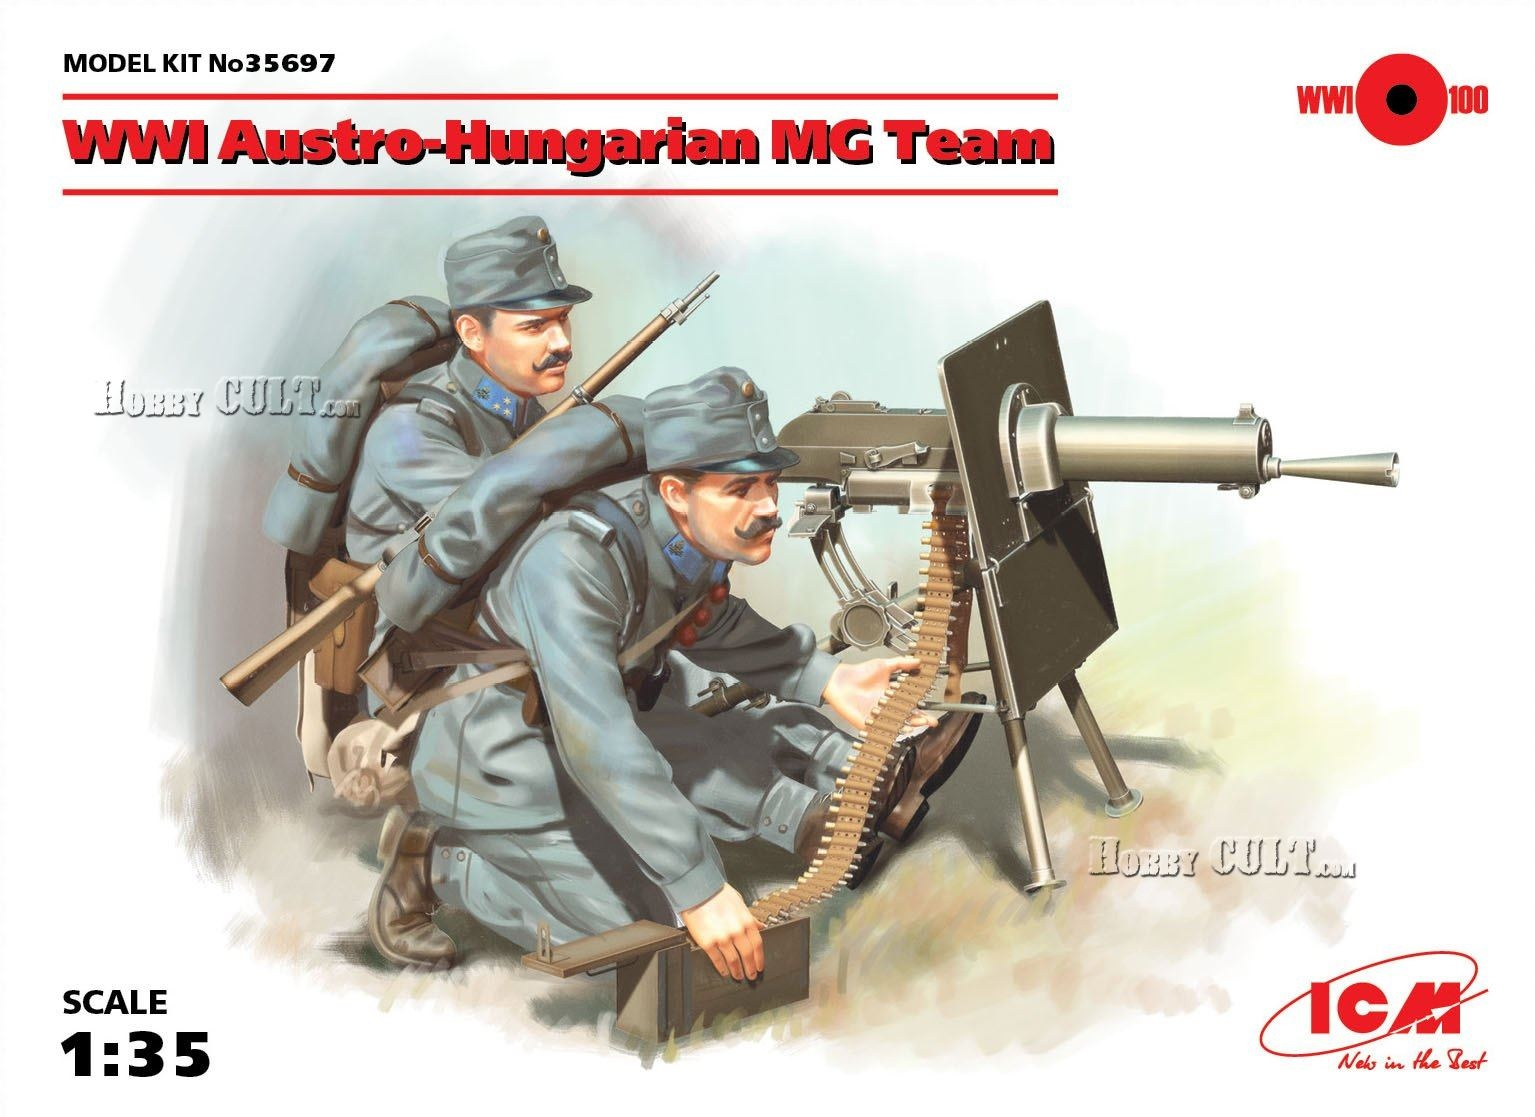 1:35 WWI Austro-Hungarian MG Team (Pre-Order)